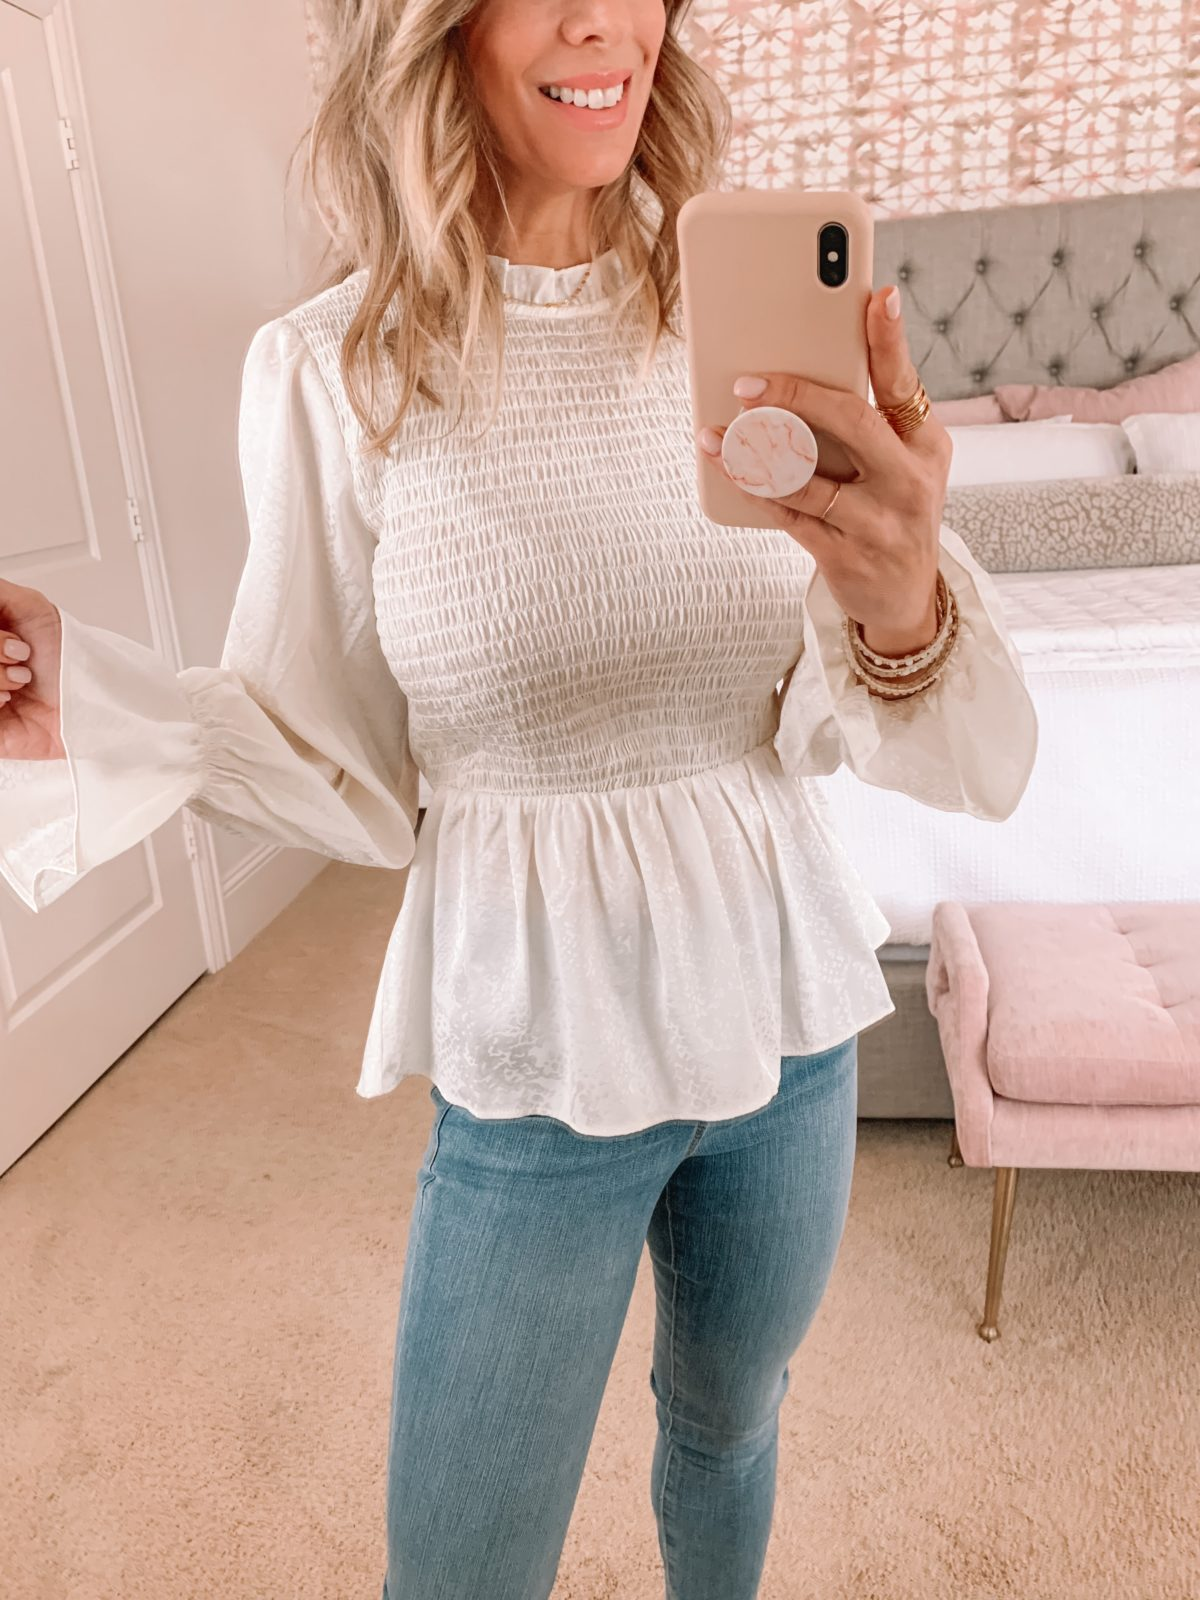 Dressing Room Finds, White Peplum Top, Jeans